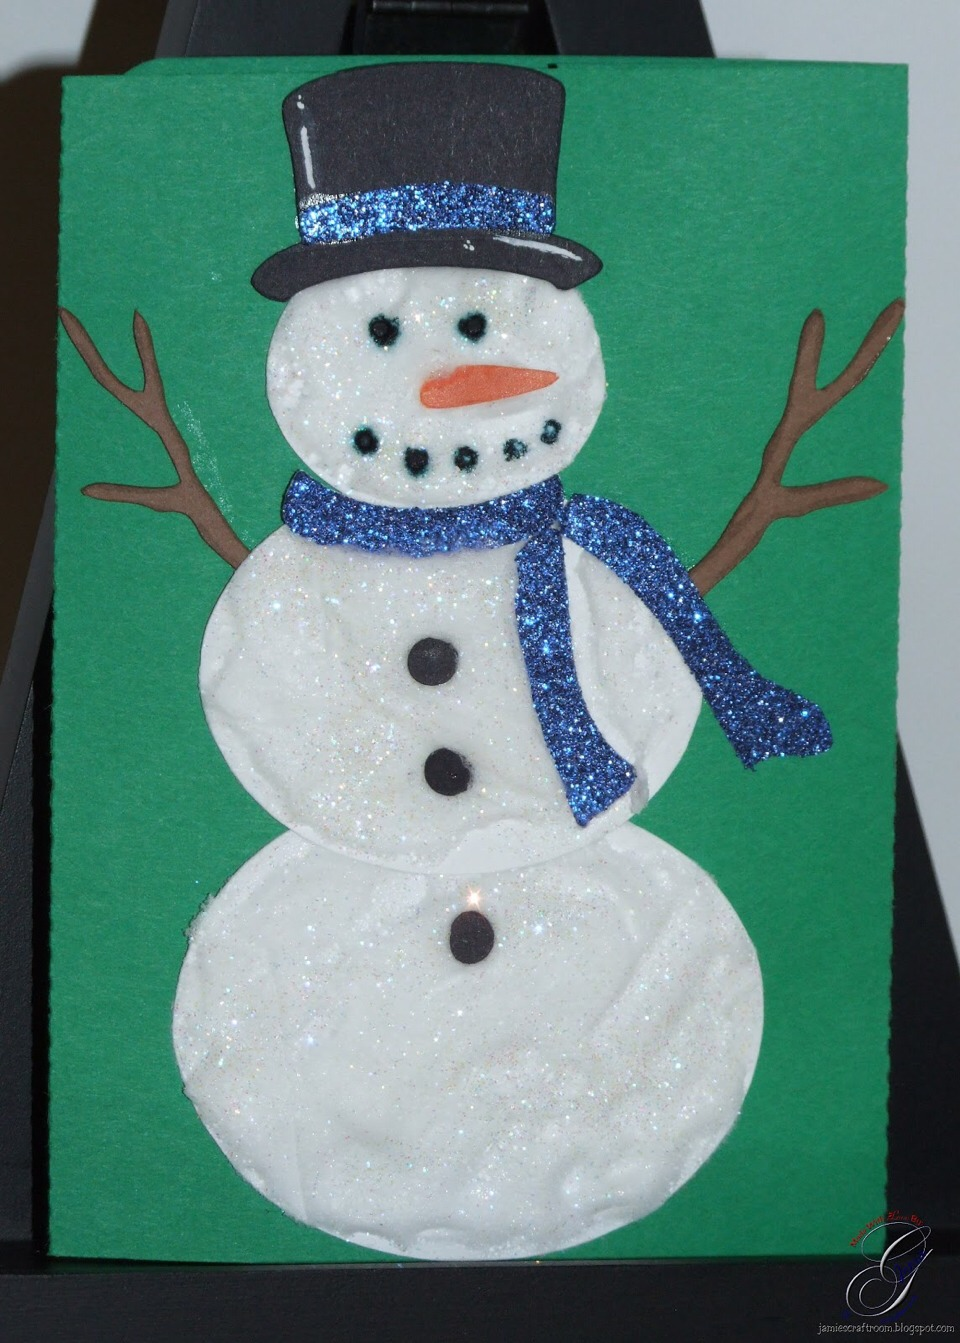 Let your kids enjoy and make snowflakes too, could also mix with green paint to make christmas trees too